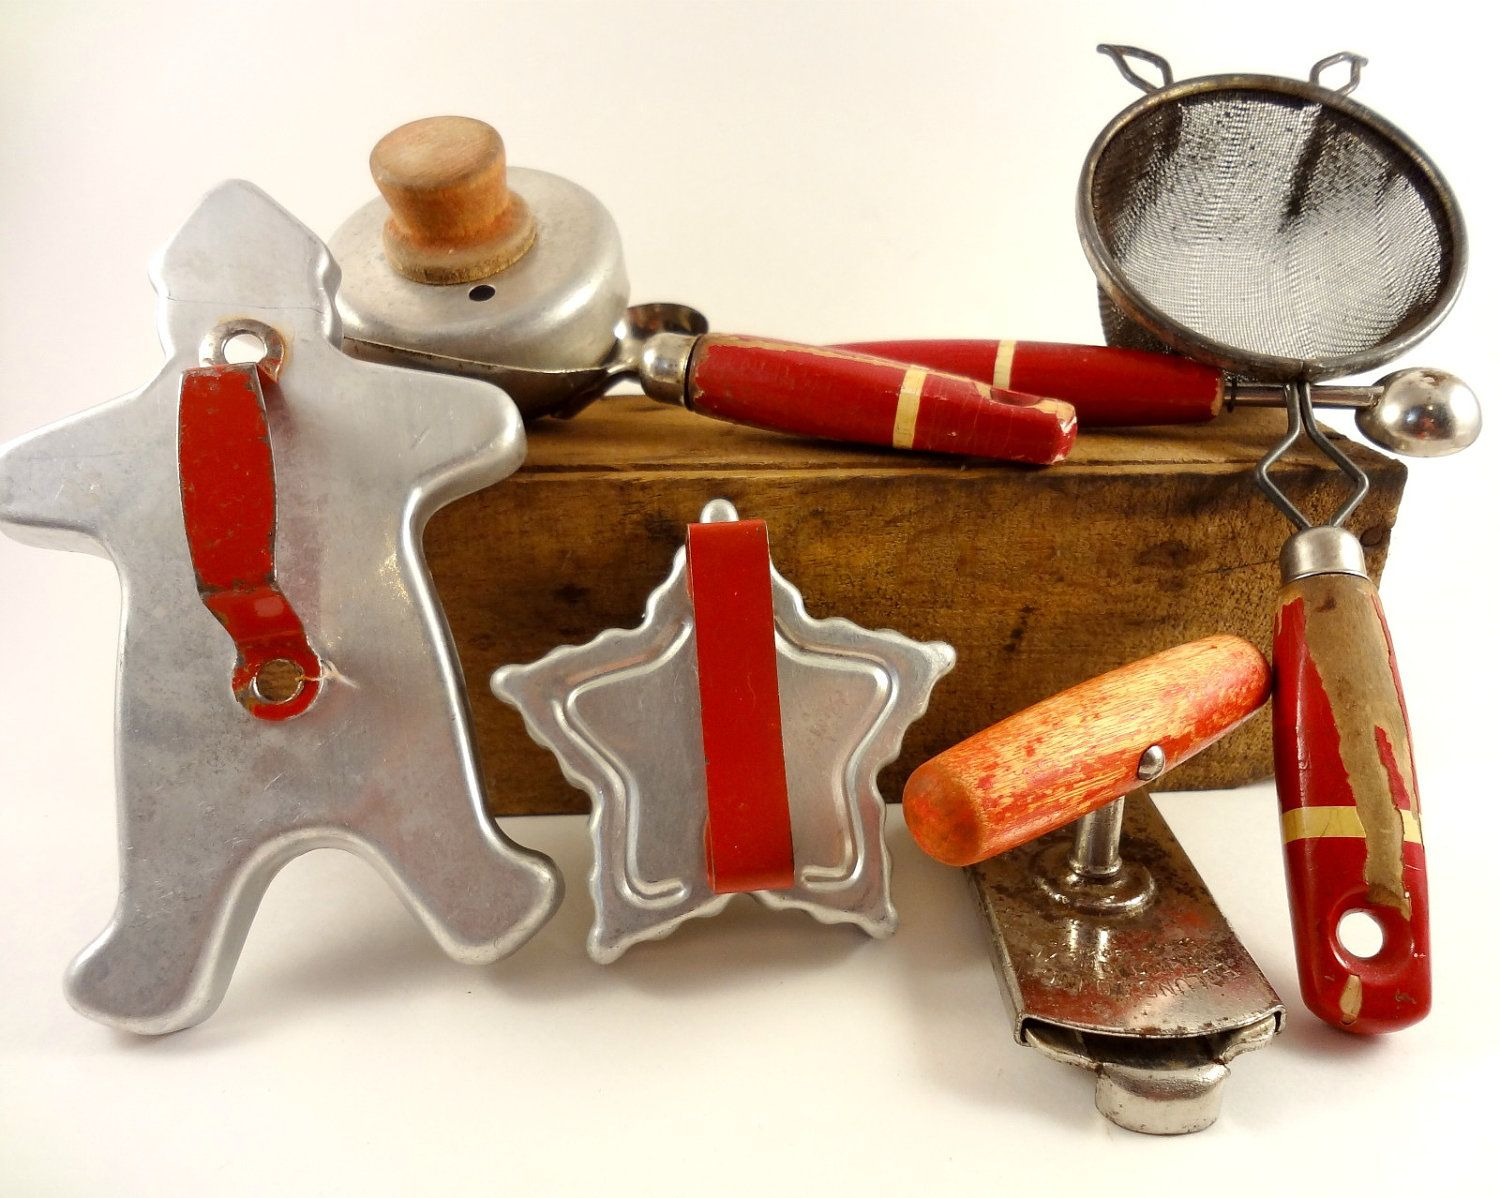 Vintage Red Handled Kitchen Utensils And Cookie Cutters I Would Gorgeous Kitchen Items Design Decoration